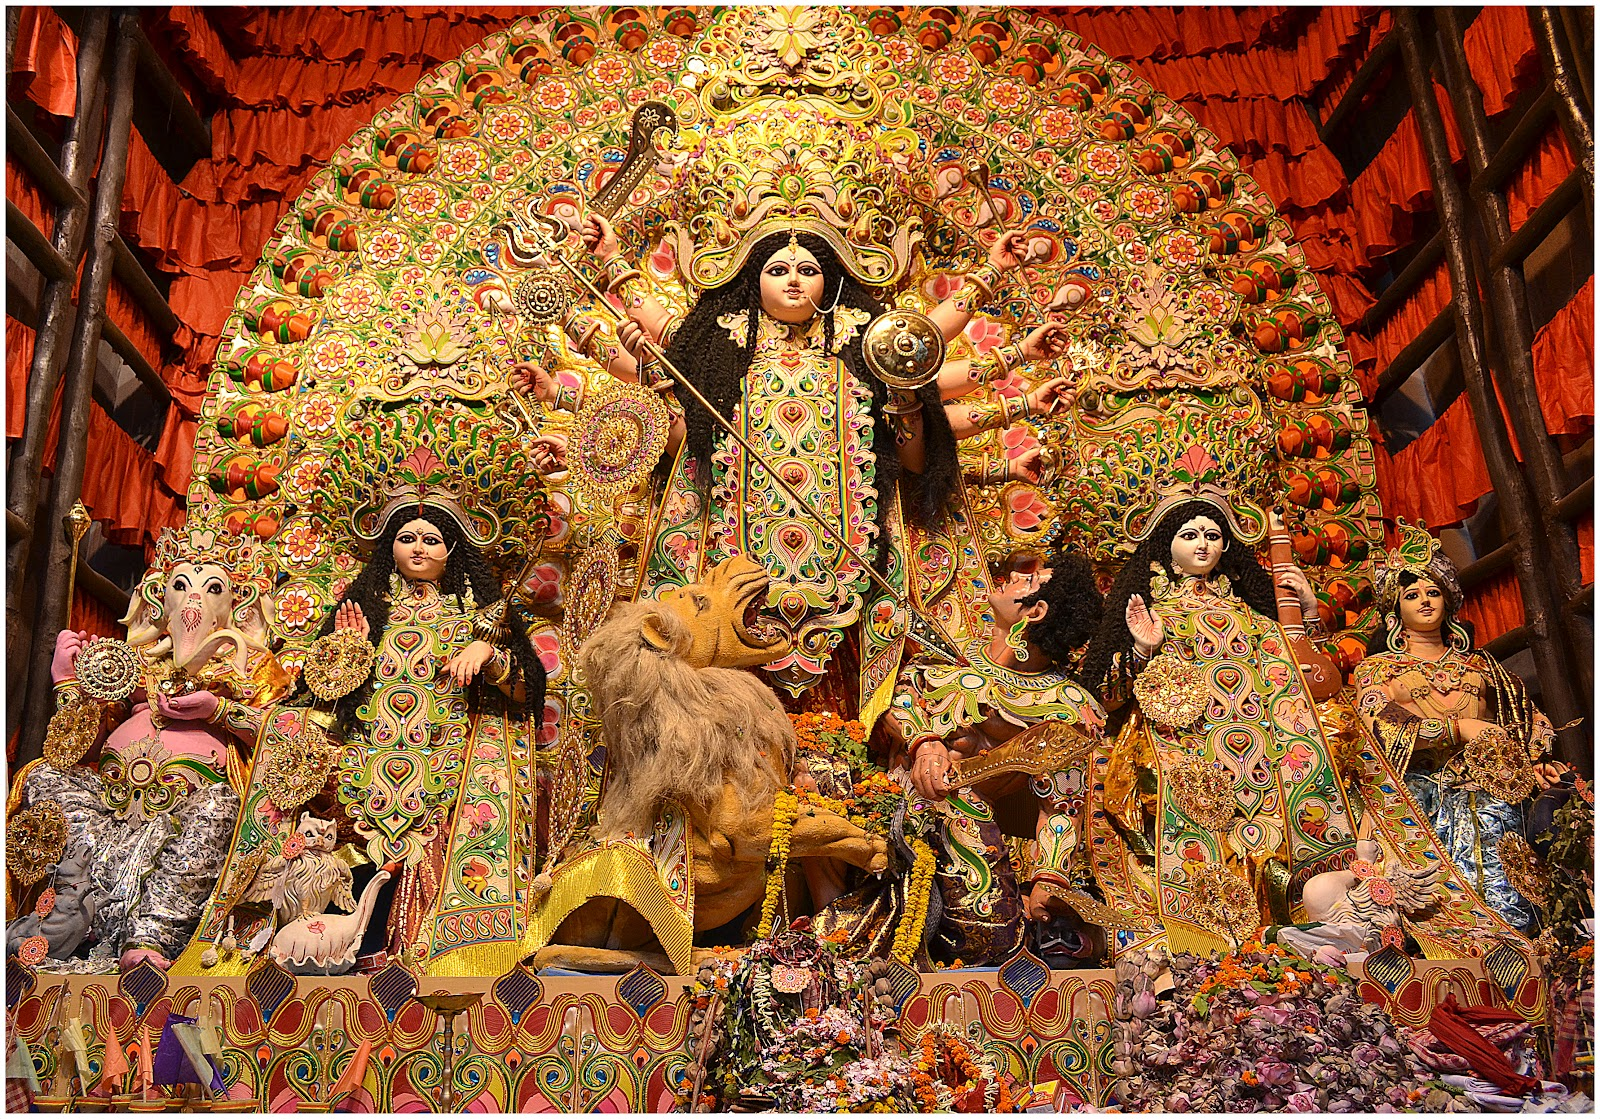 durga puja Navratri | durga puja is an indian festival held twice a year and probably the most widely celebrated hindu festival dedicated to goddess durga it's a nine night festival.